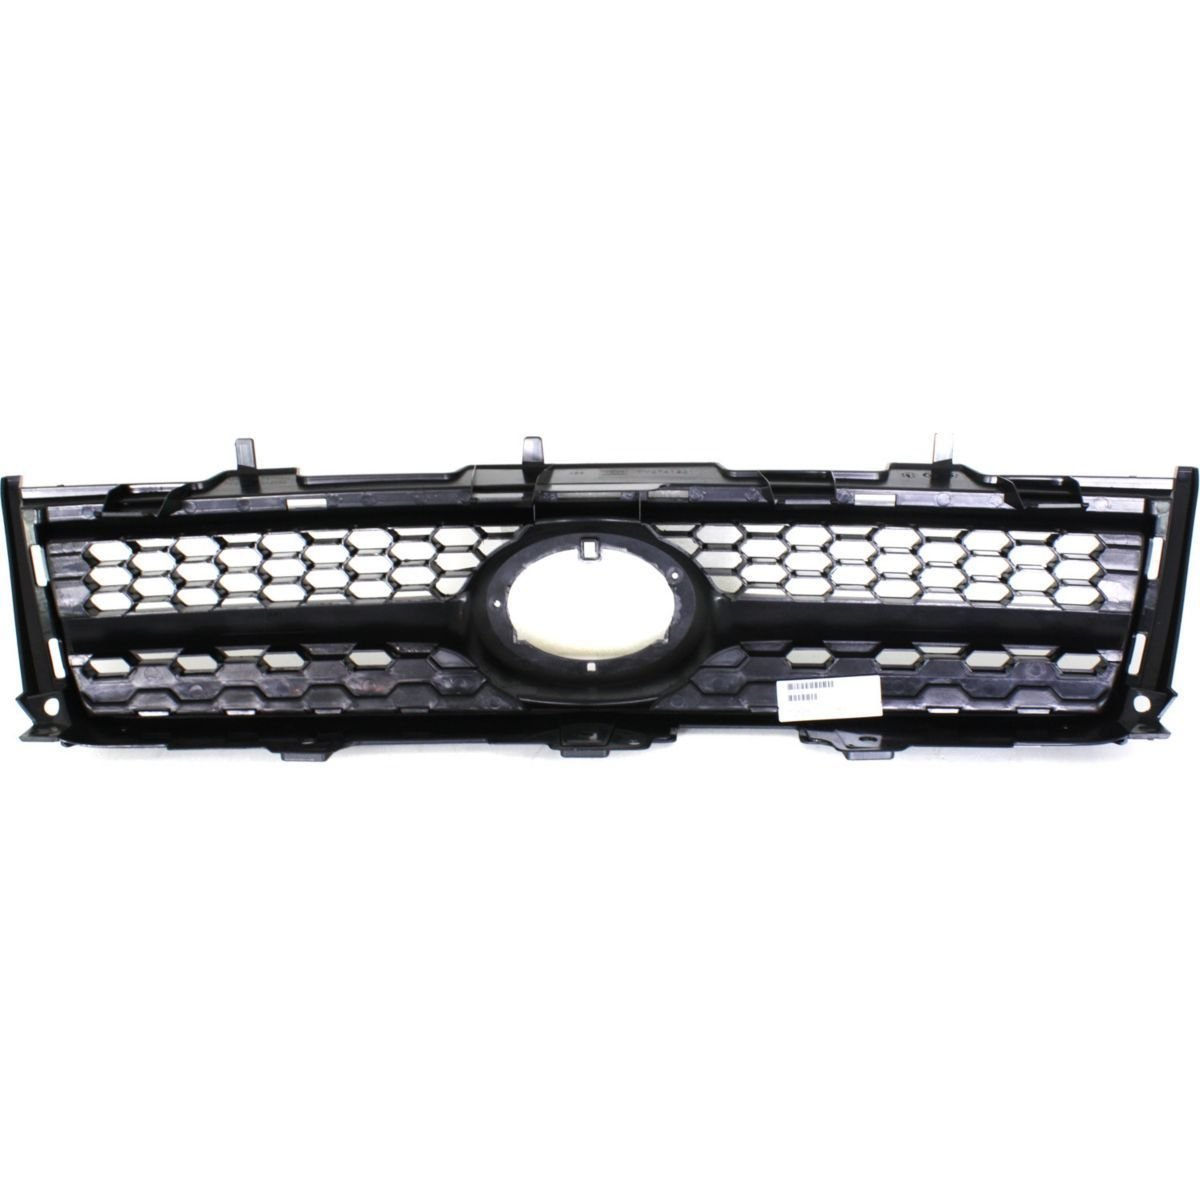 Elite7 Front Grille Assembly Replacement for 09-12 Toyota Rav4 TO1200315